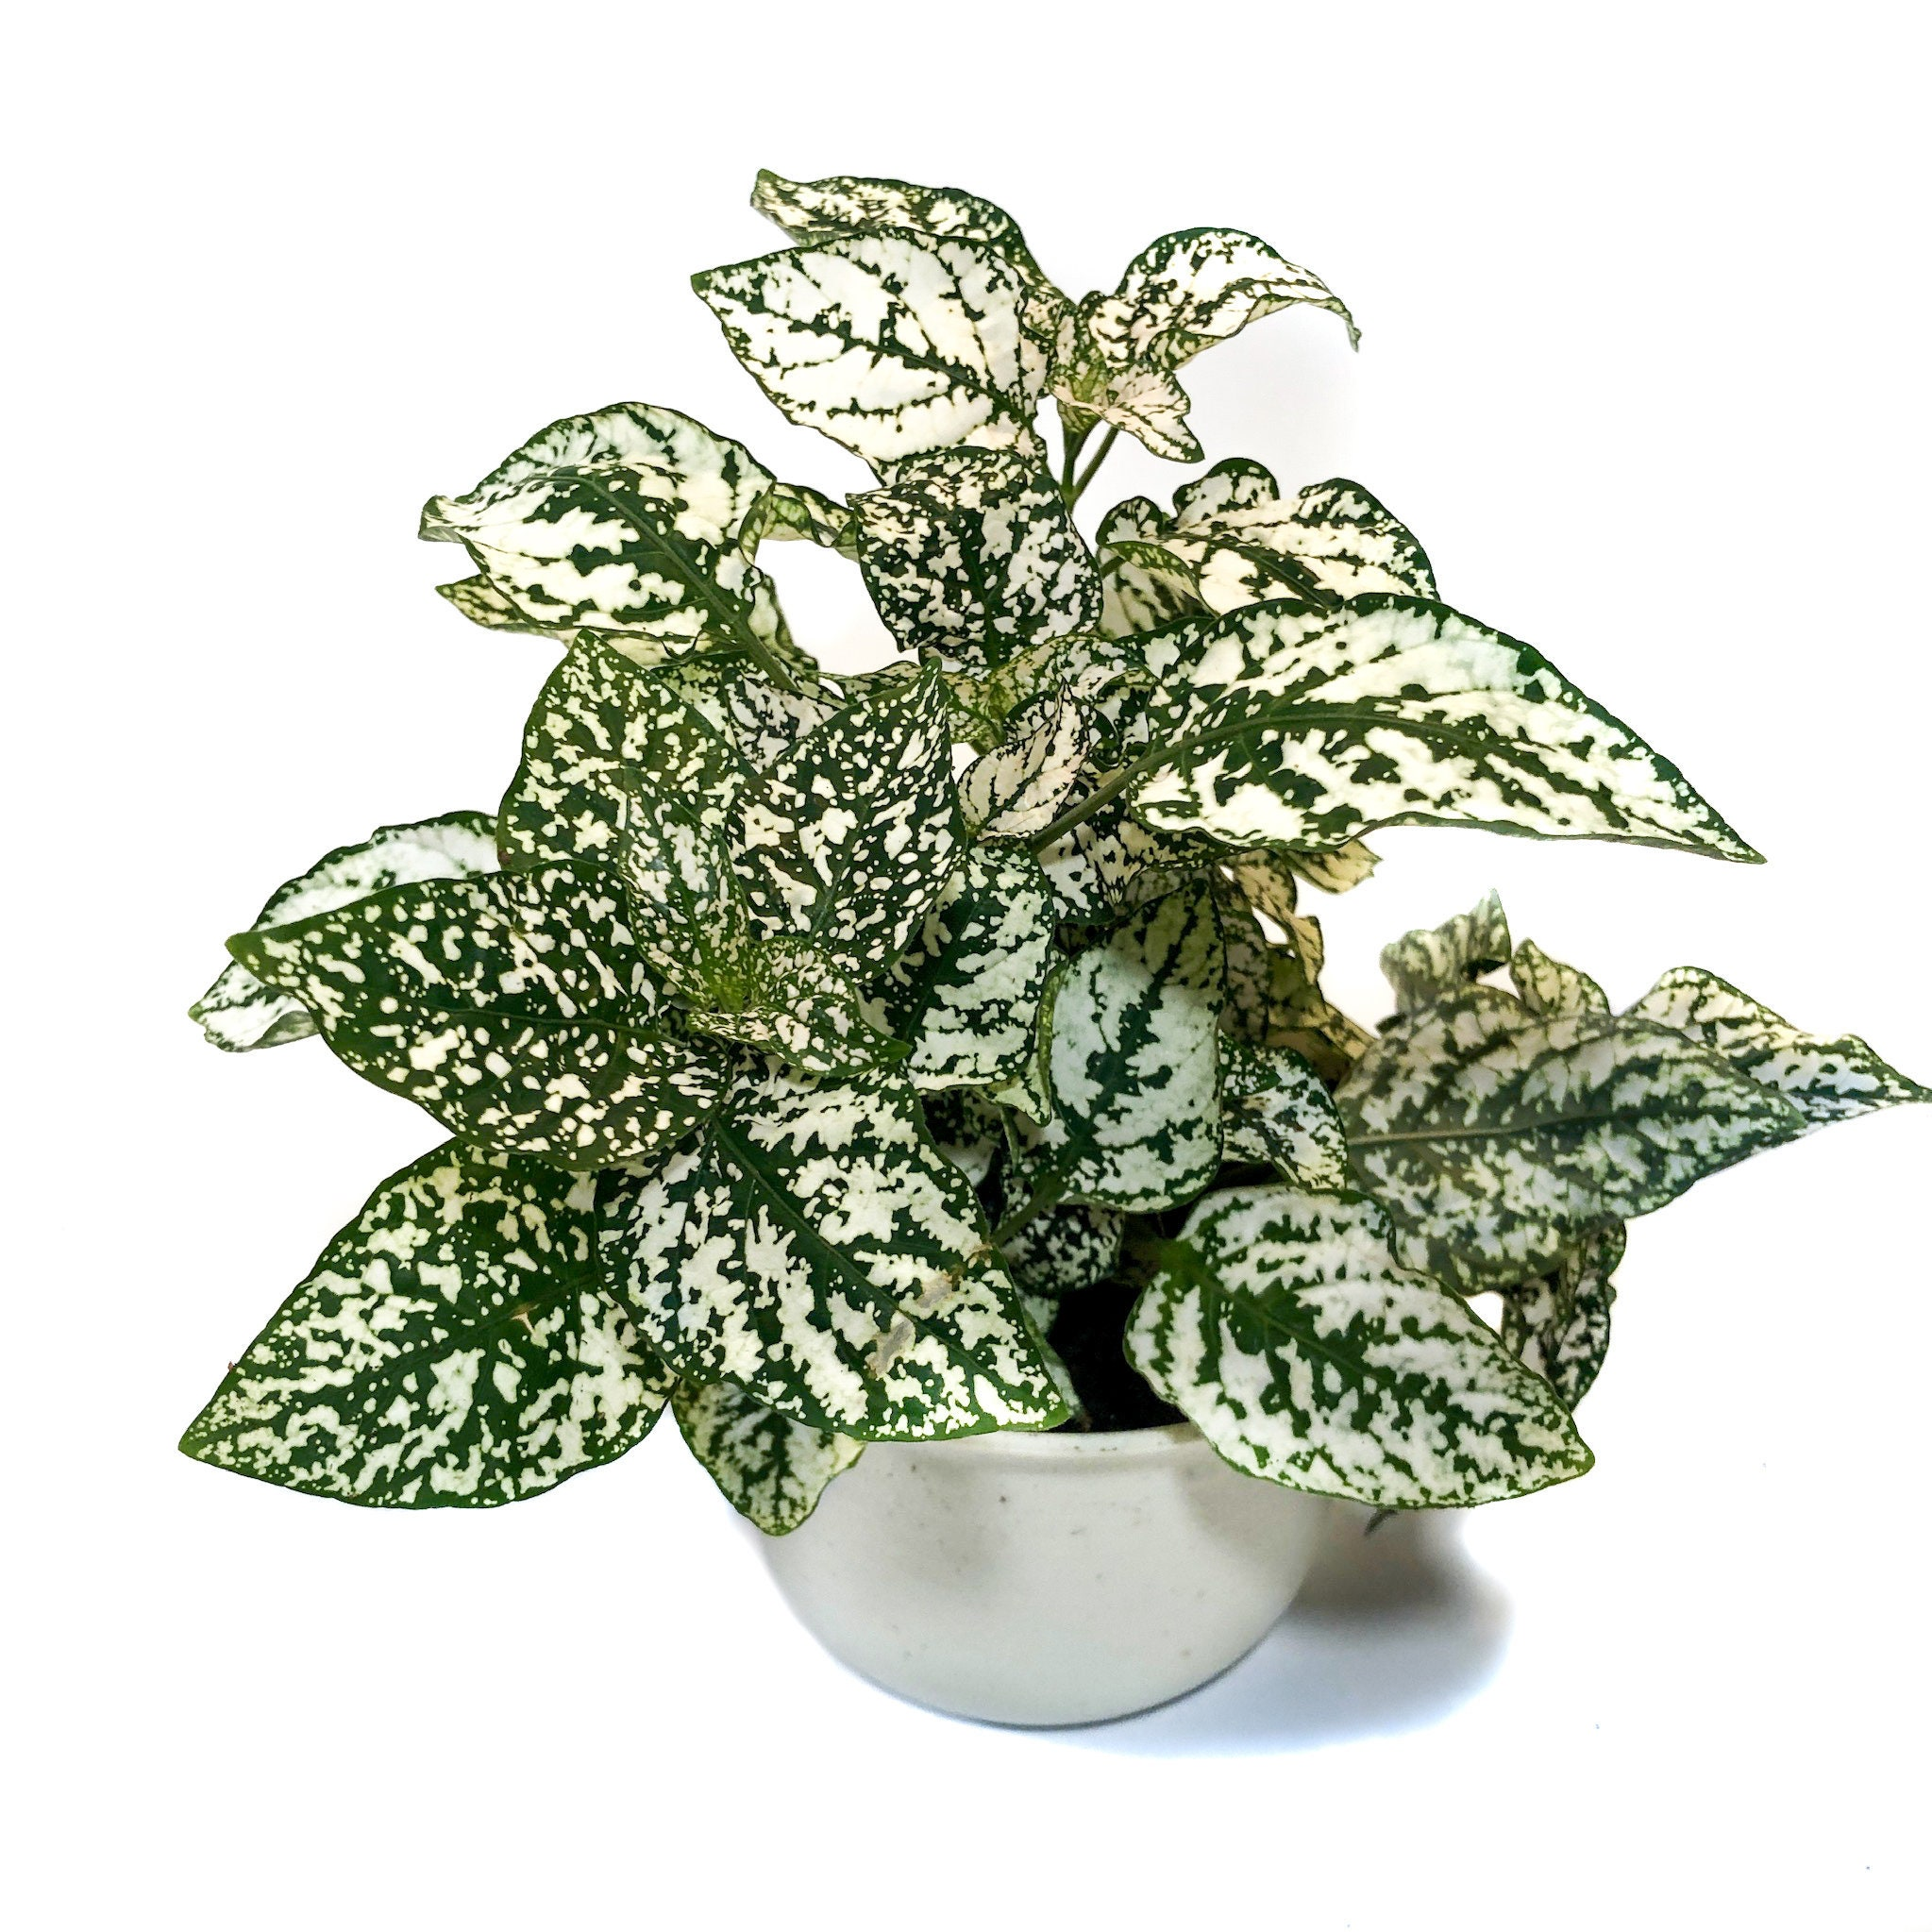 "Picture of Live White Polka Dot aka Hypoestes phyllostachya Plant Fit 4"" Pot"